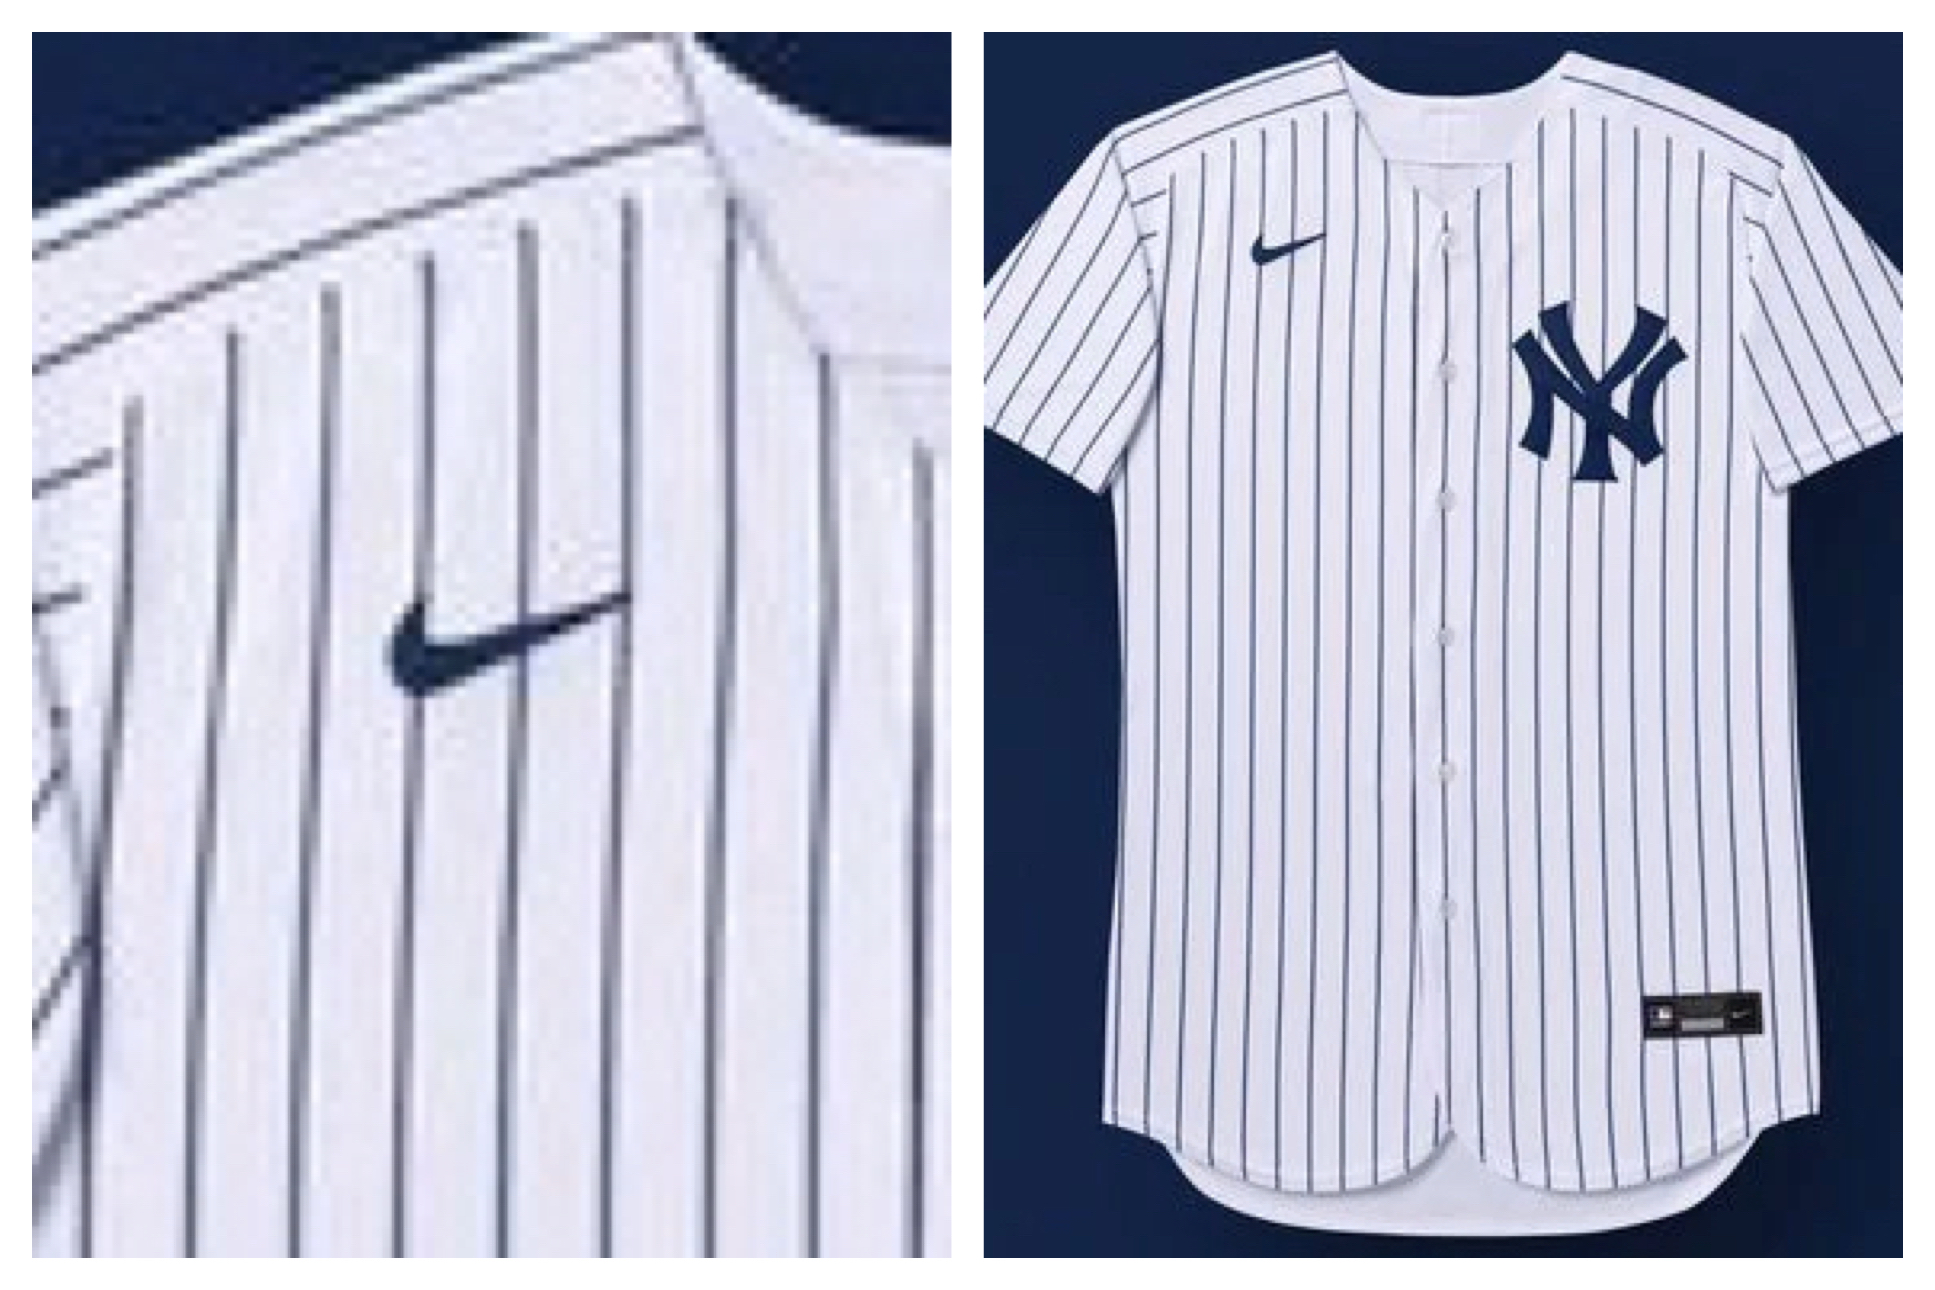 Sacrilege\u0027 Yankees fans rip new Nike logo on jerseys , nj.com